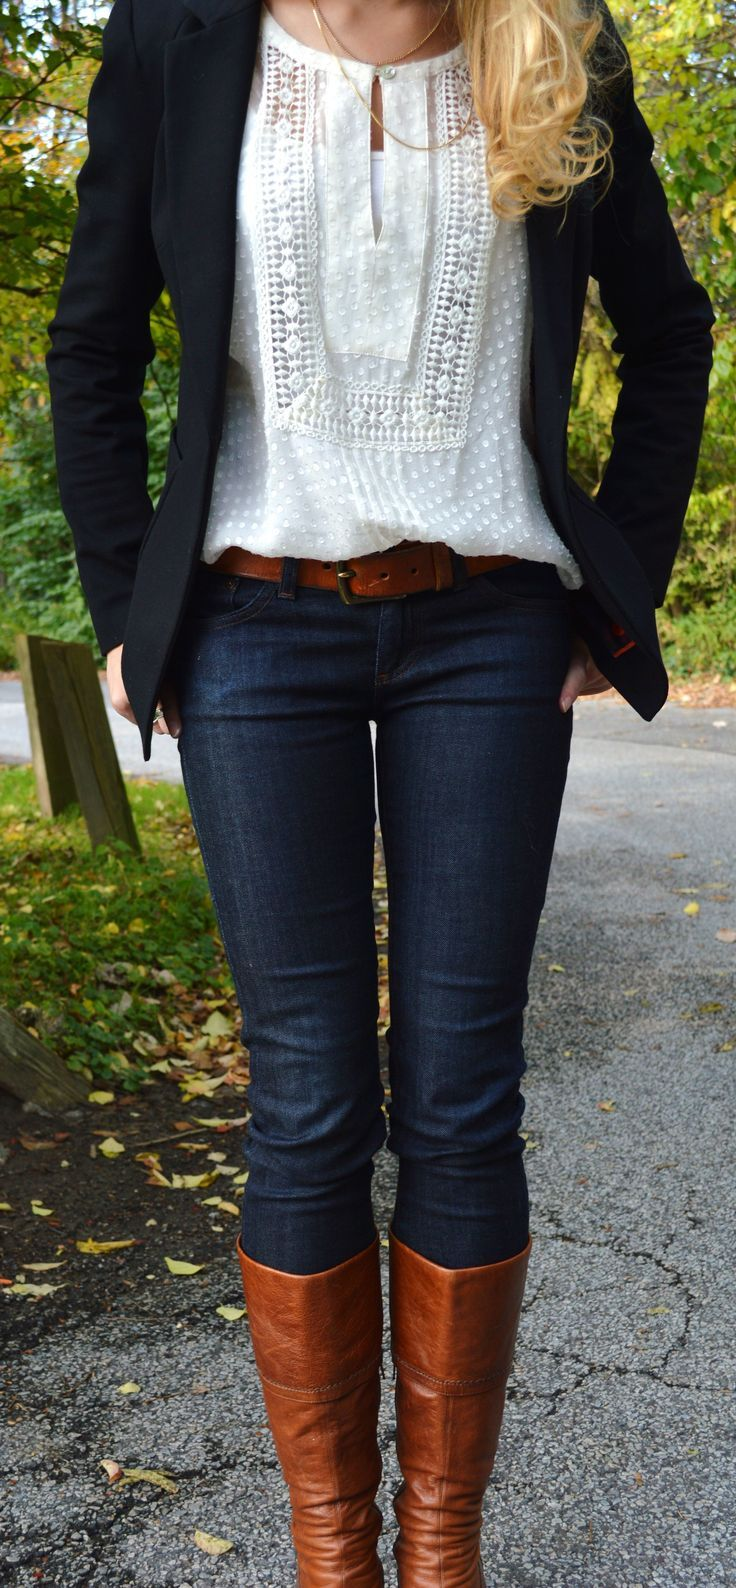 Skinny jeans, knee-high brown boots, blazer and white top layered with white vest... love!